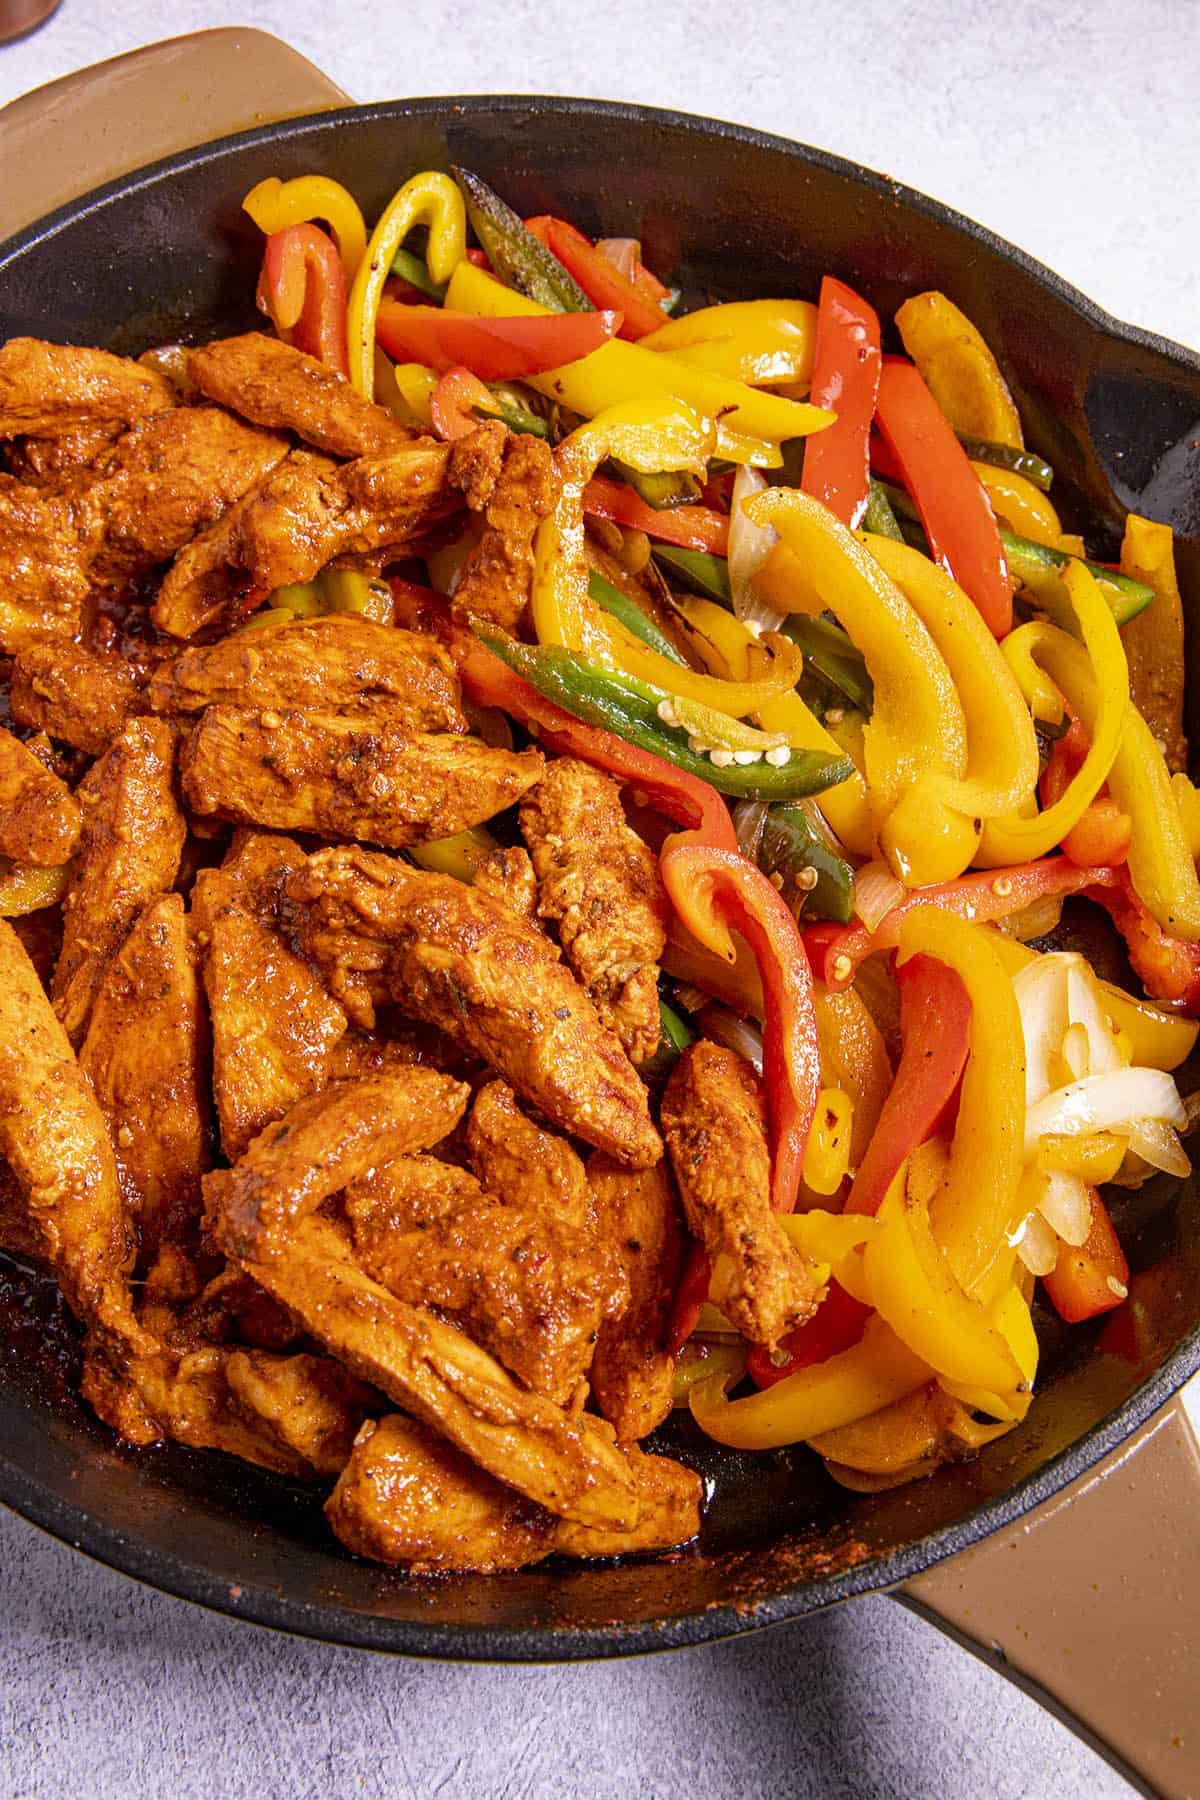 Adding chicken back to pan with the peppers to heat